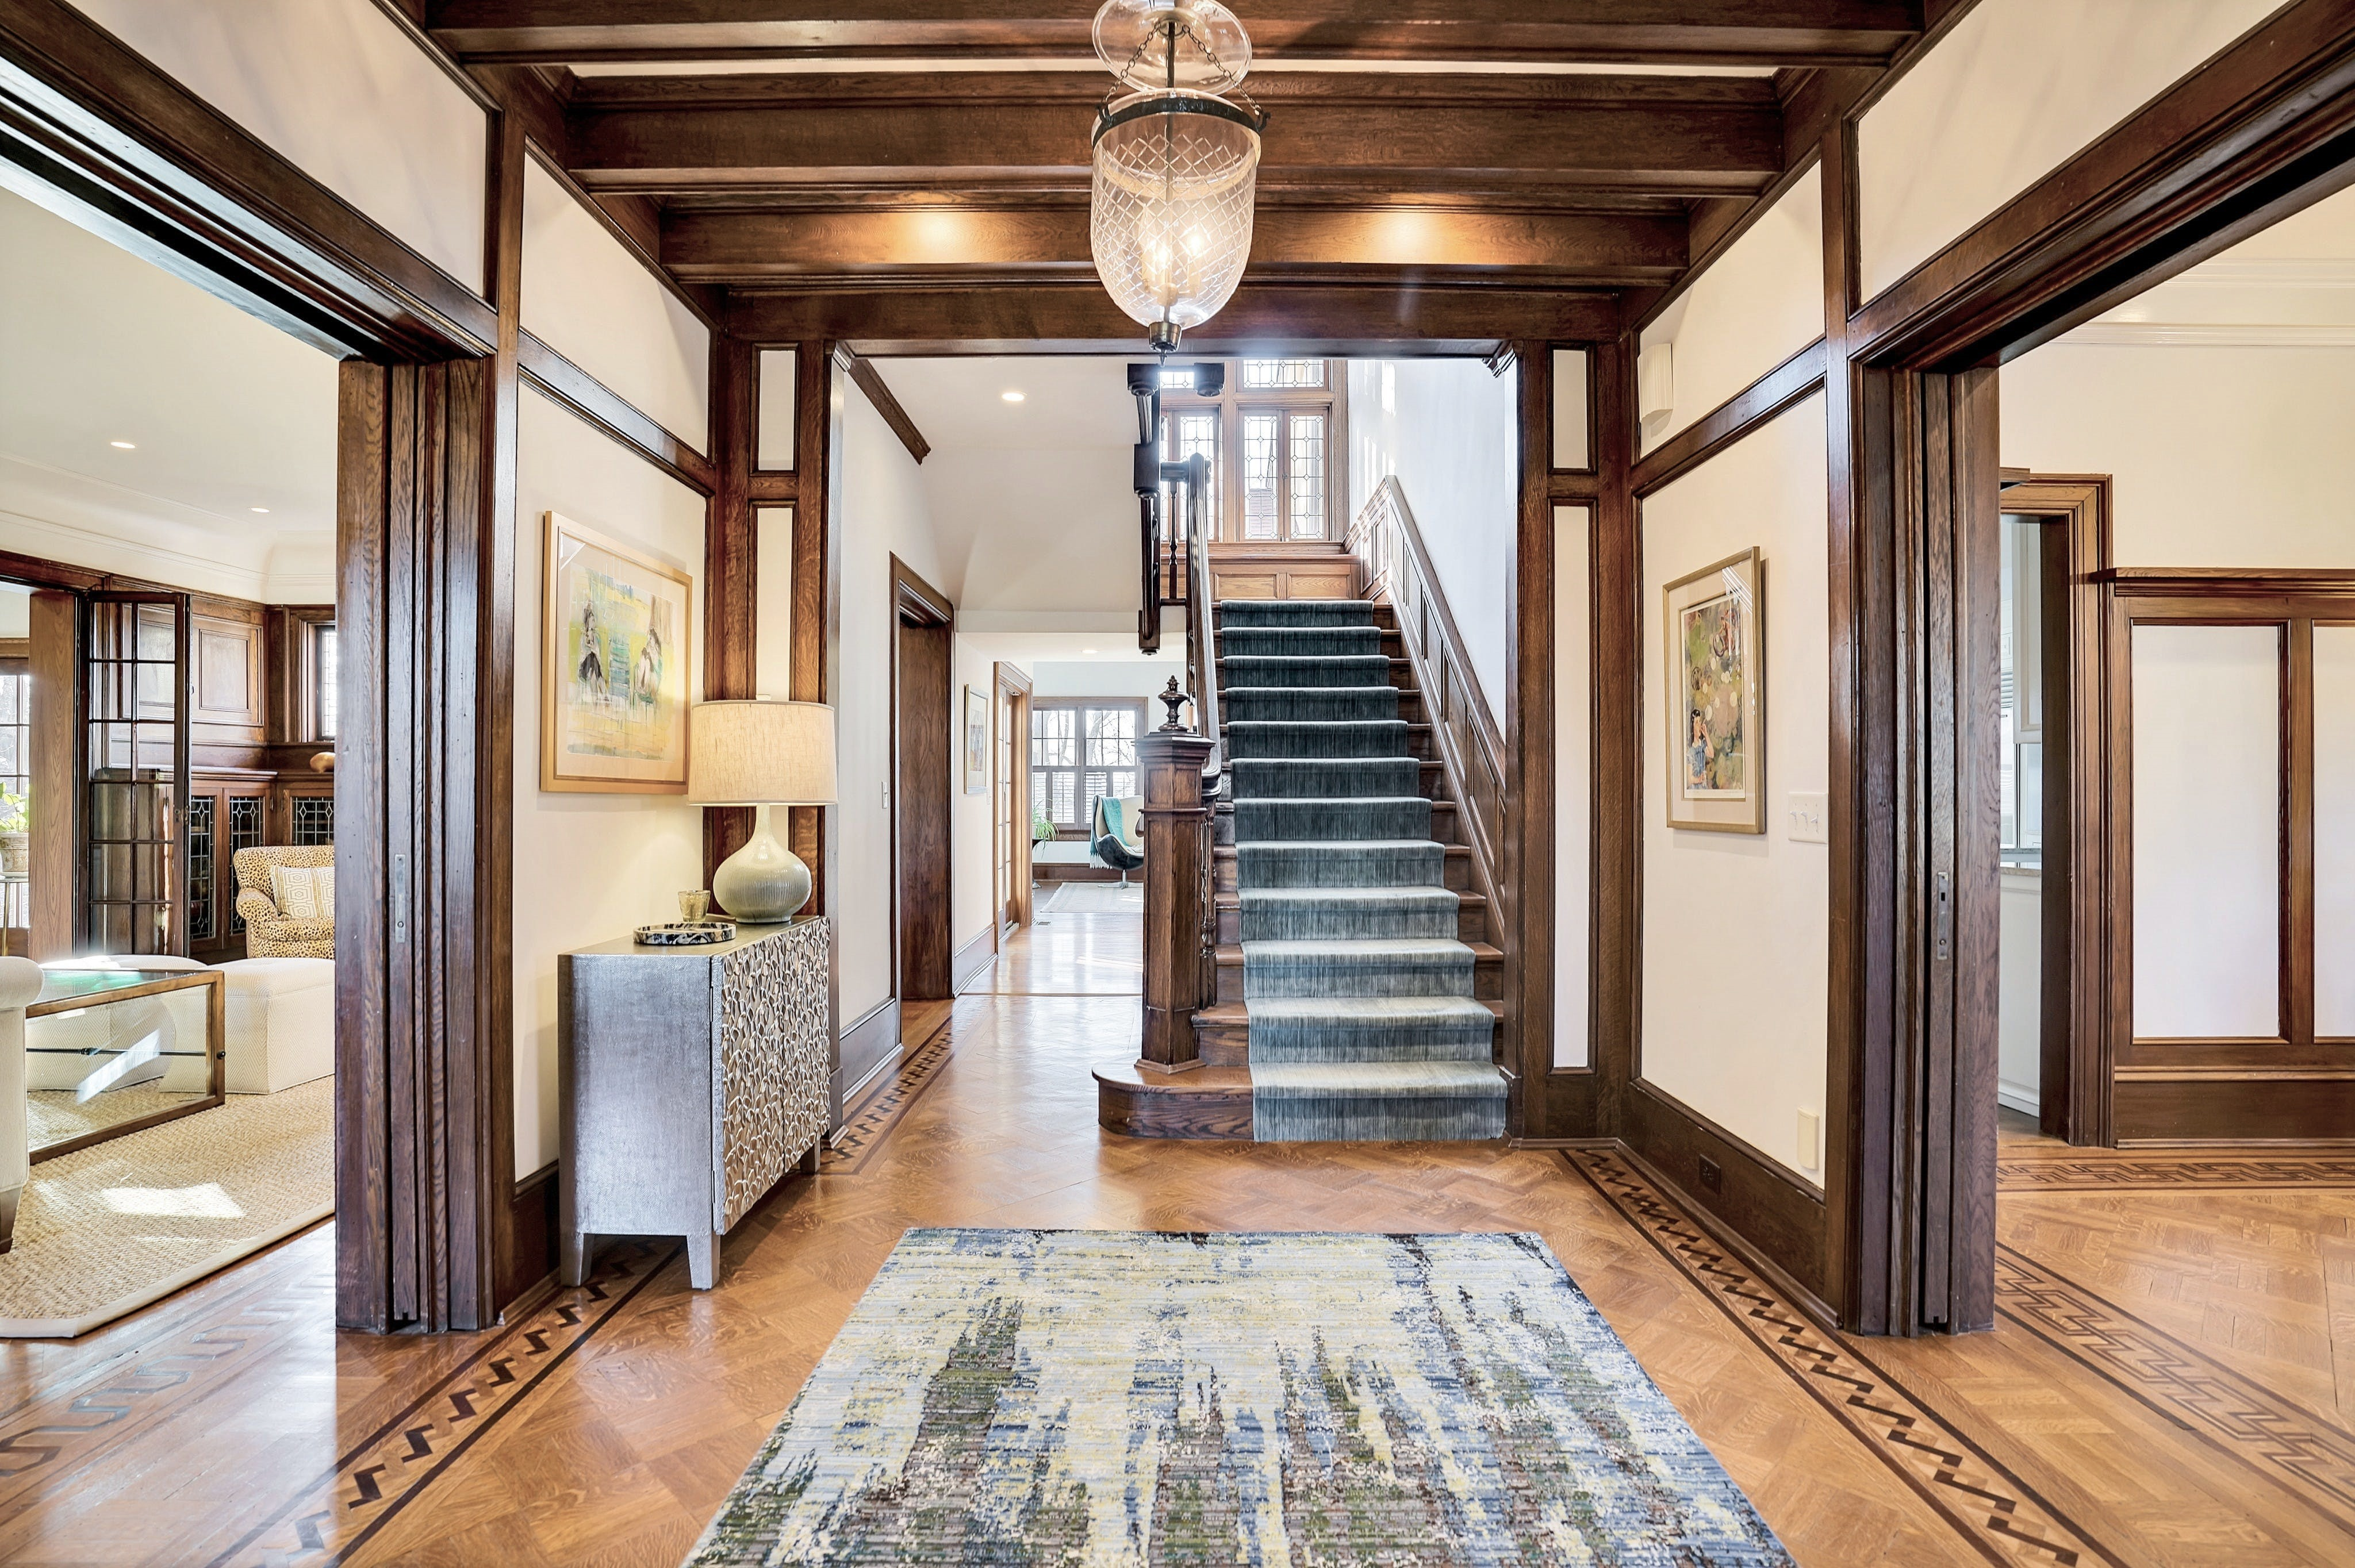 73 Oak Ridge - Foyer